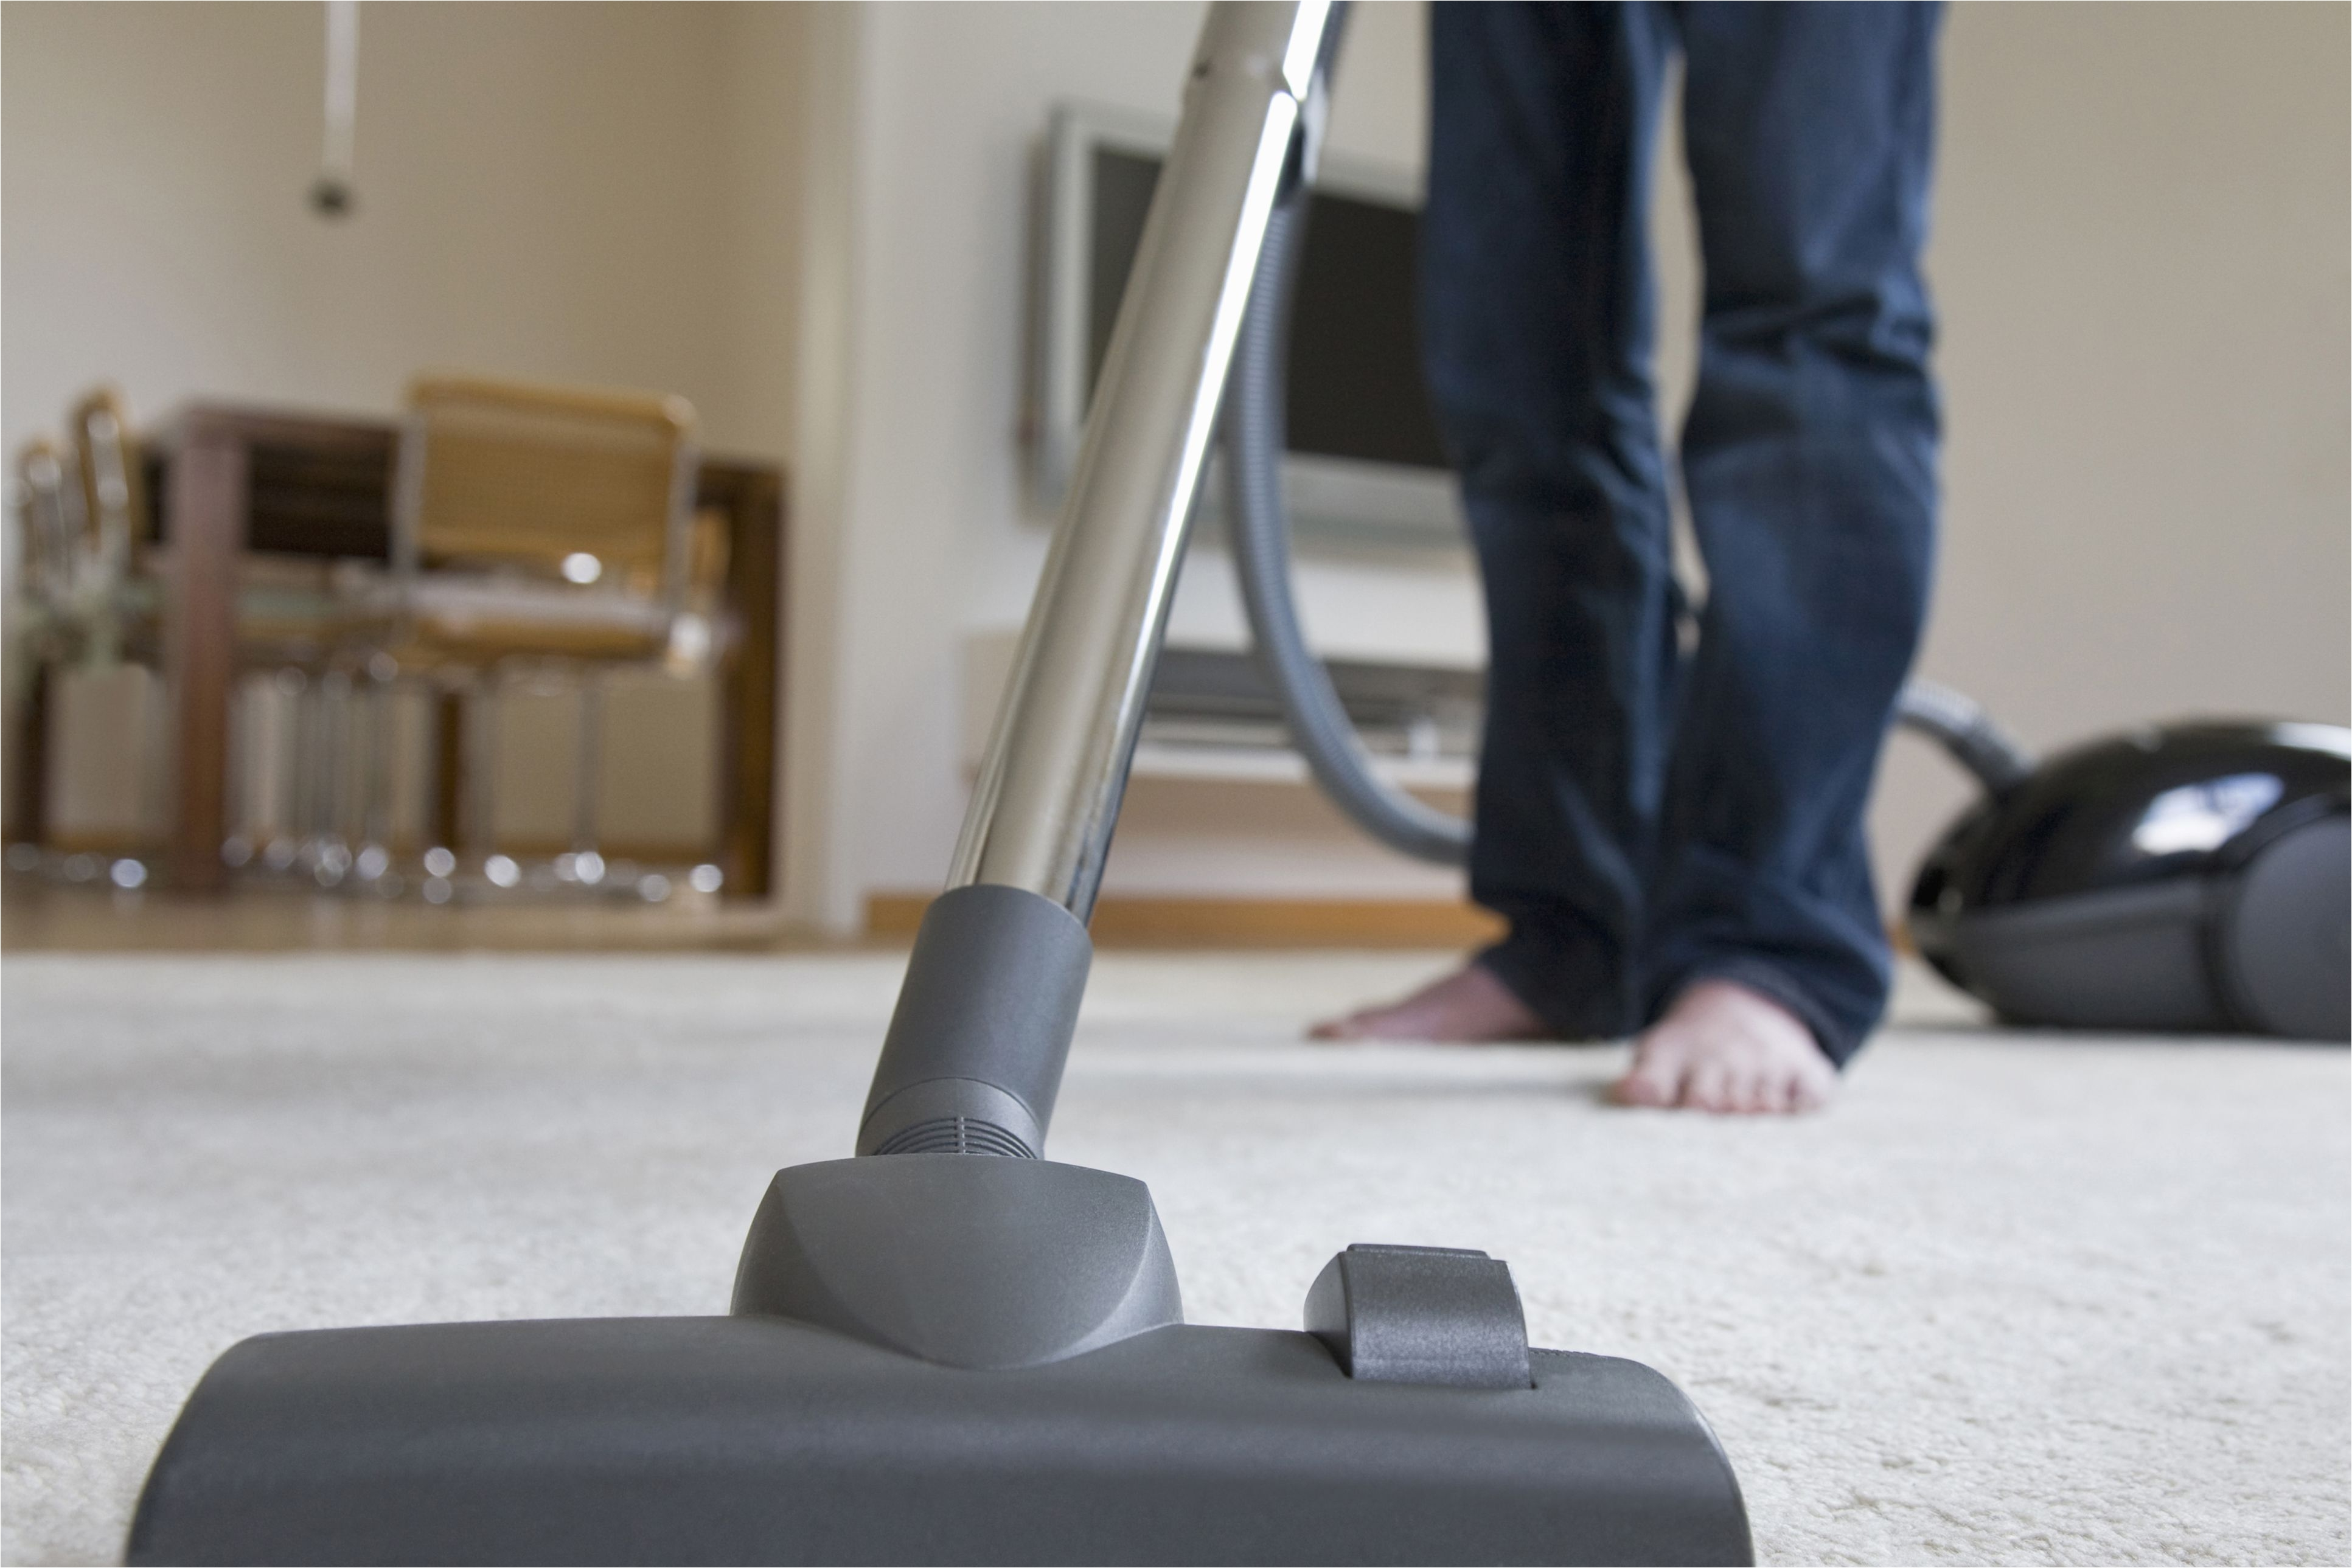 Best Vacuum for Carpet and Wood Floors 2017 the Right Vacuum for Smartstrand and Other soft Carpets